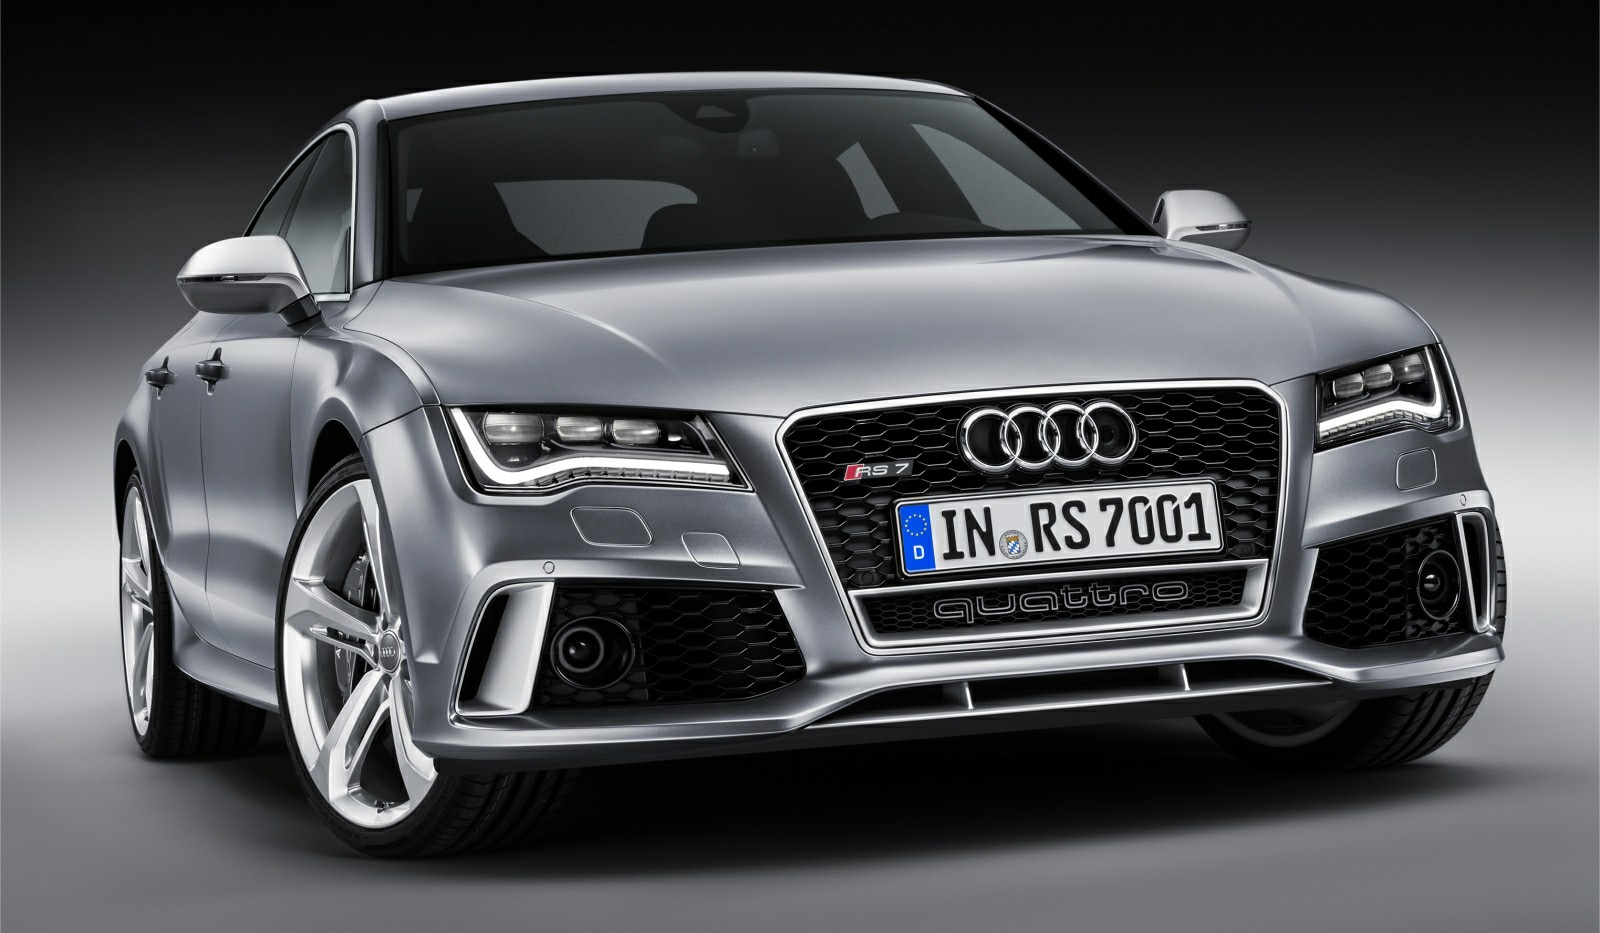 Audi Car Wallpaper Wallpapers For Free Download About 1600x933